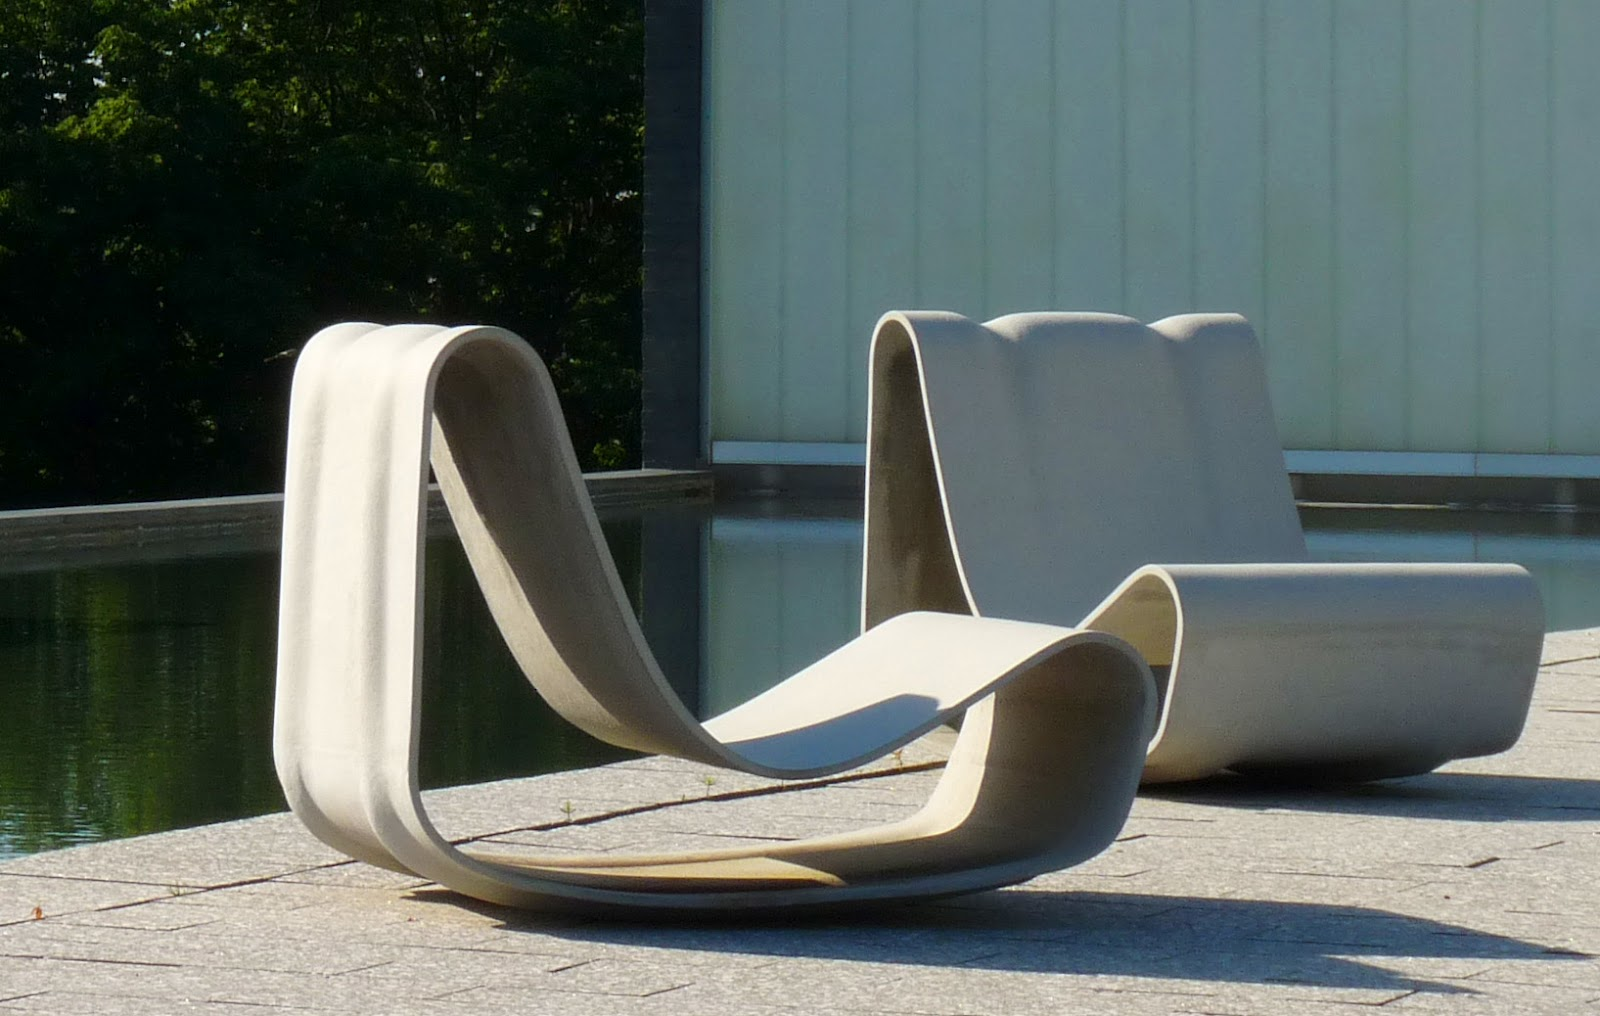 You can make furniture out of concrete